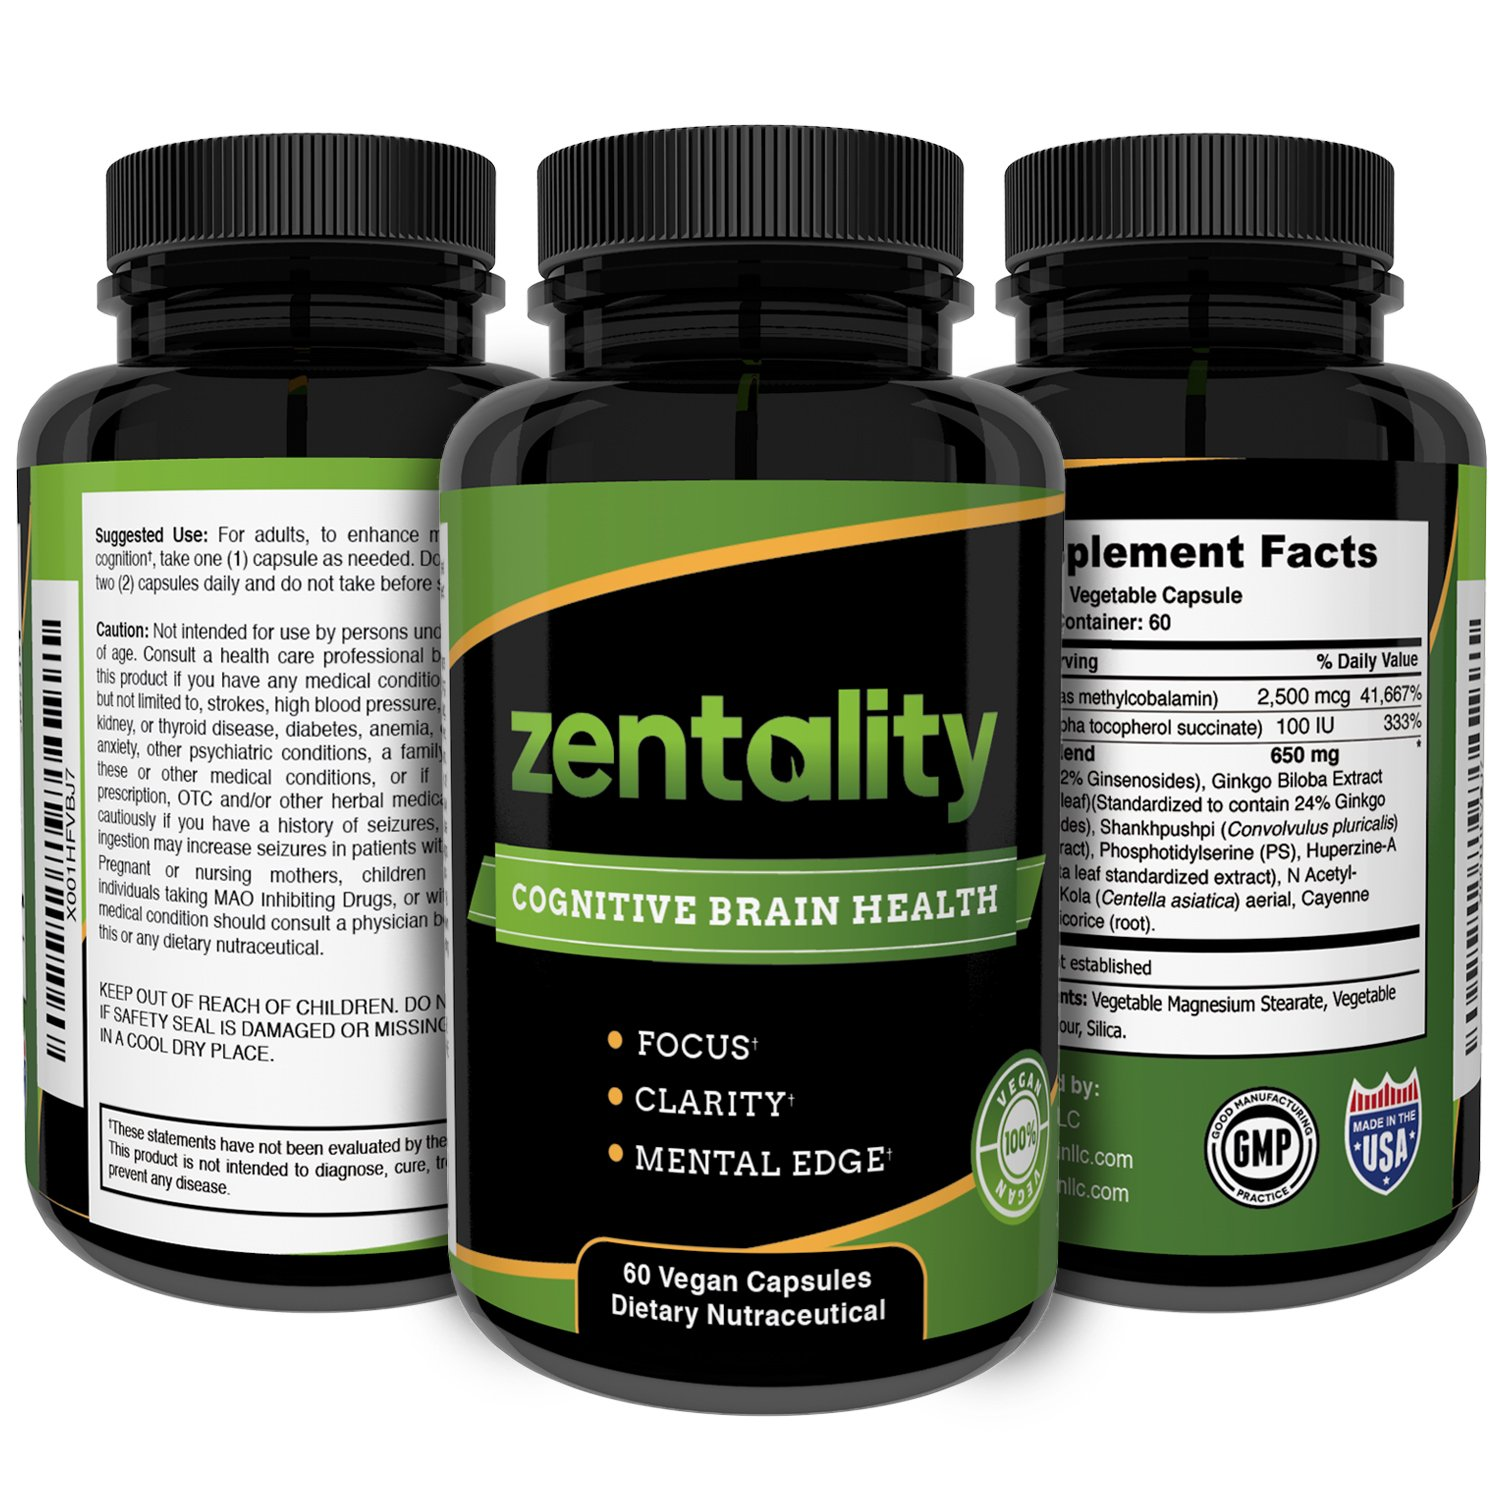 Cognitive Brain Health Supplement, Brain Booster - by Light Within LLC - to Enhance Focus, Mental Clarity, Improve Memory with Asian Ginseng and Ginkgo Biloba